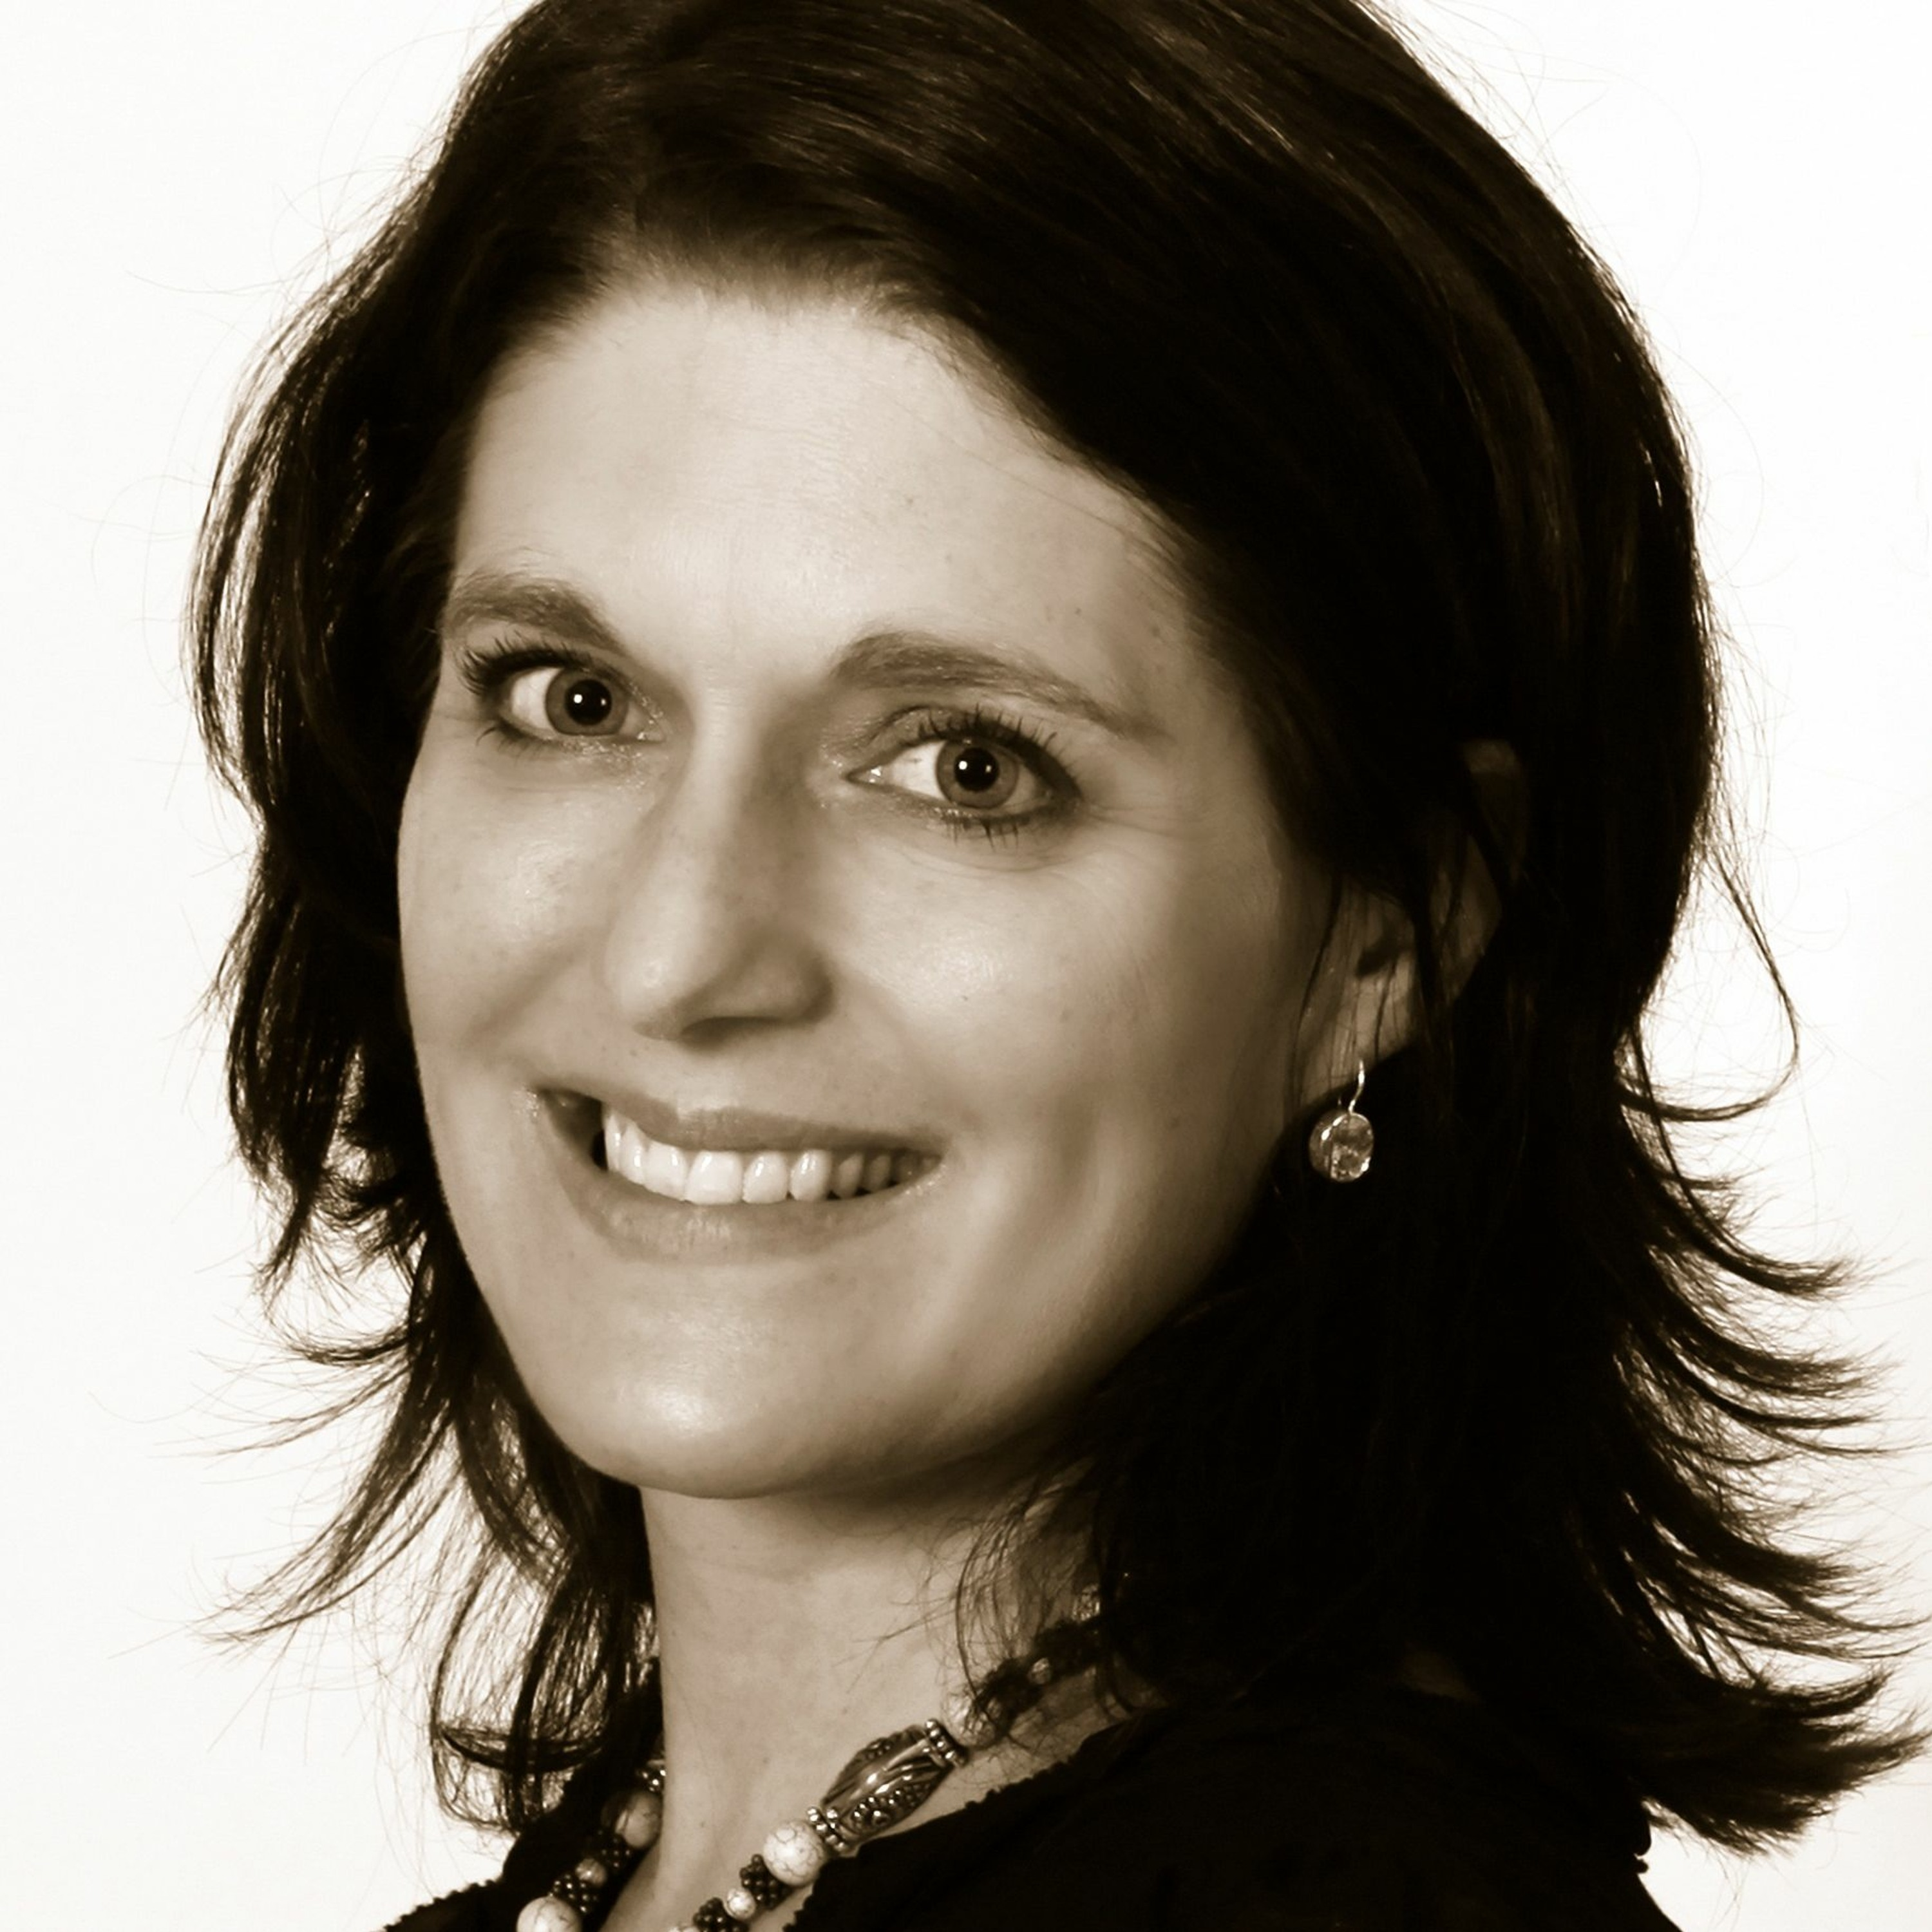 Alison Treadaway of Striata on the merits of South Africa's Protection of Personal Information Act